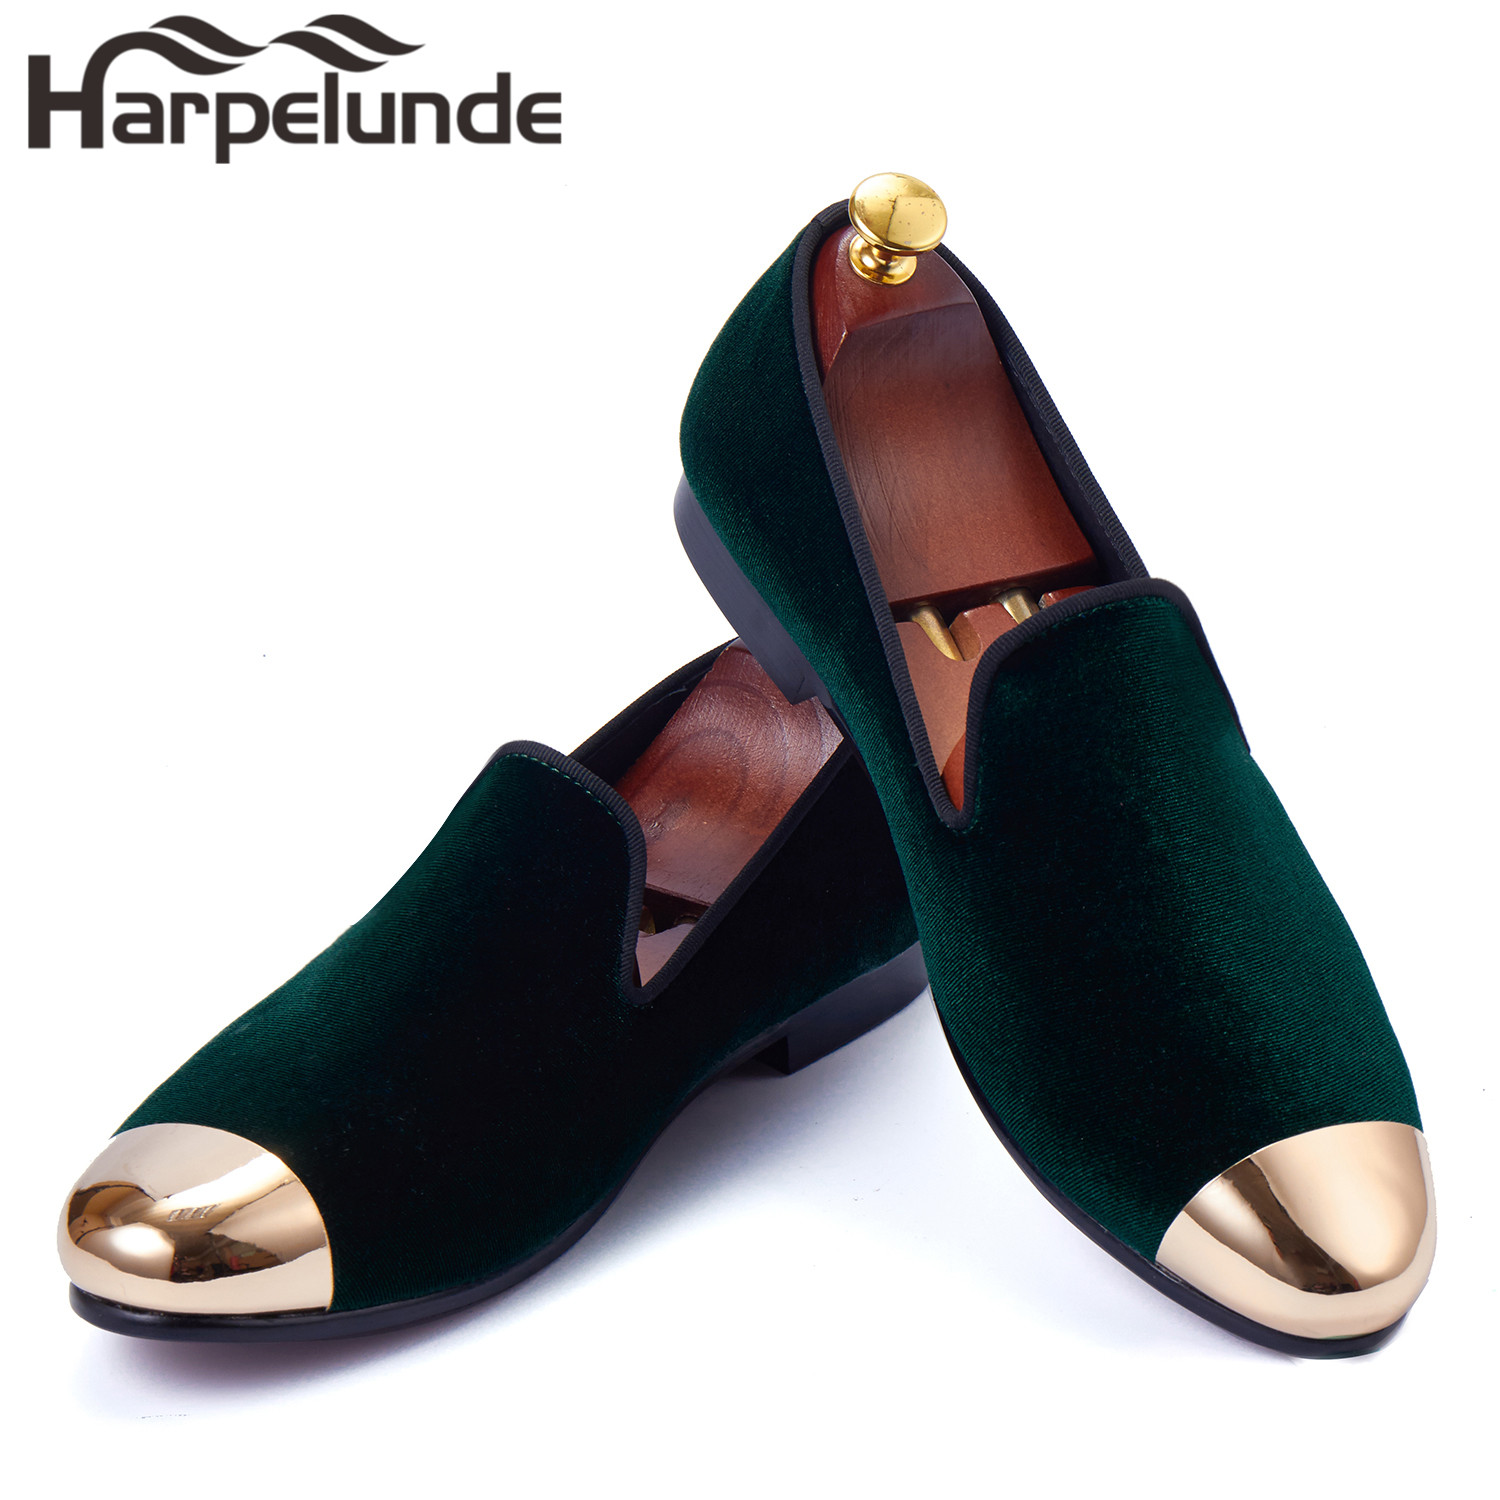 Harpelunde Classic Green Velvet Men Loafer Shoes Copper Cap Toe Flats Size 6-14 harpelunde animal buckle men dress loafers printed velvet flat shoes with copper cap toe size 6 to 14